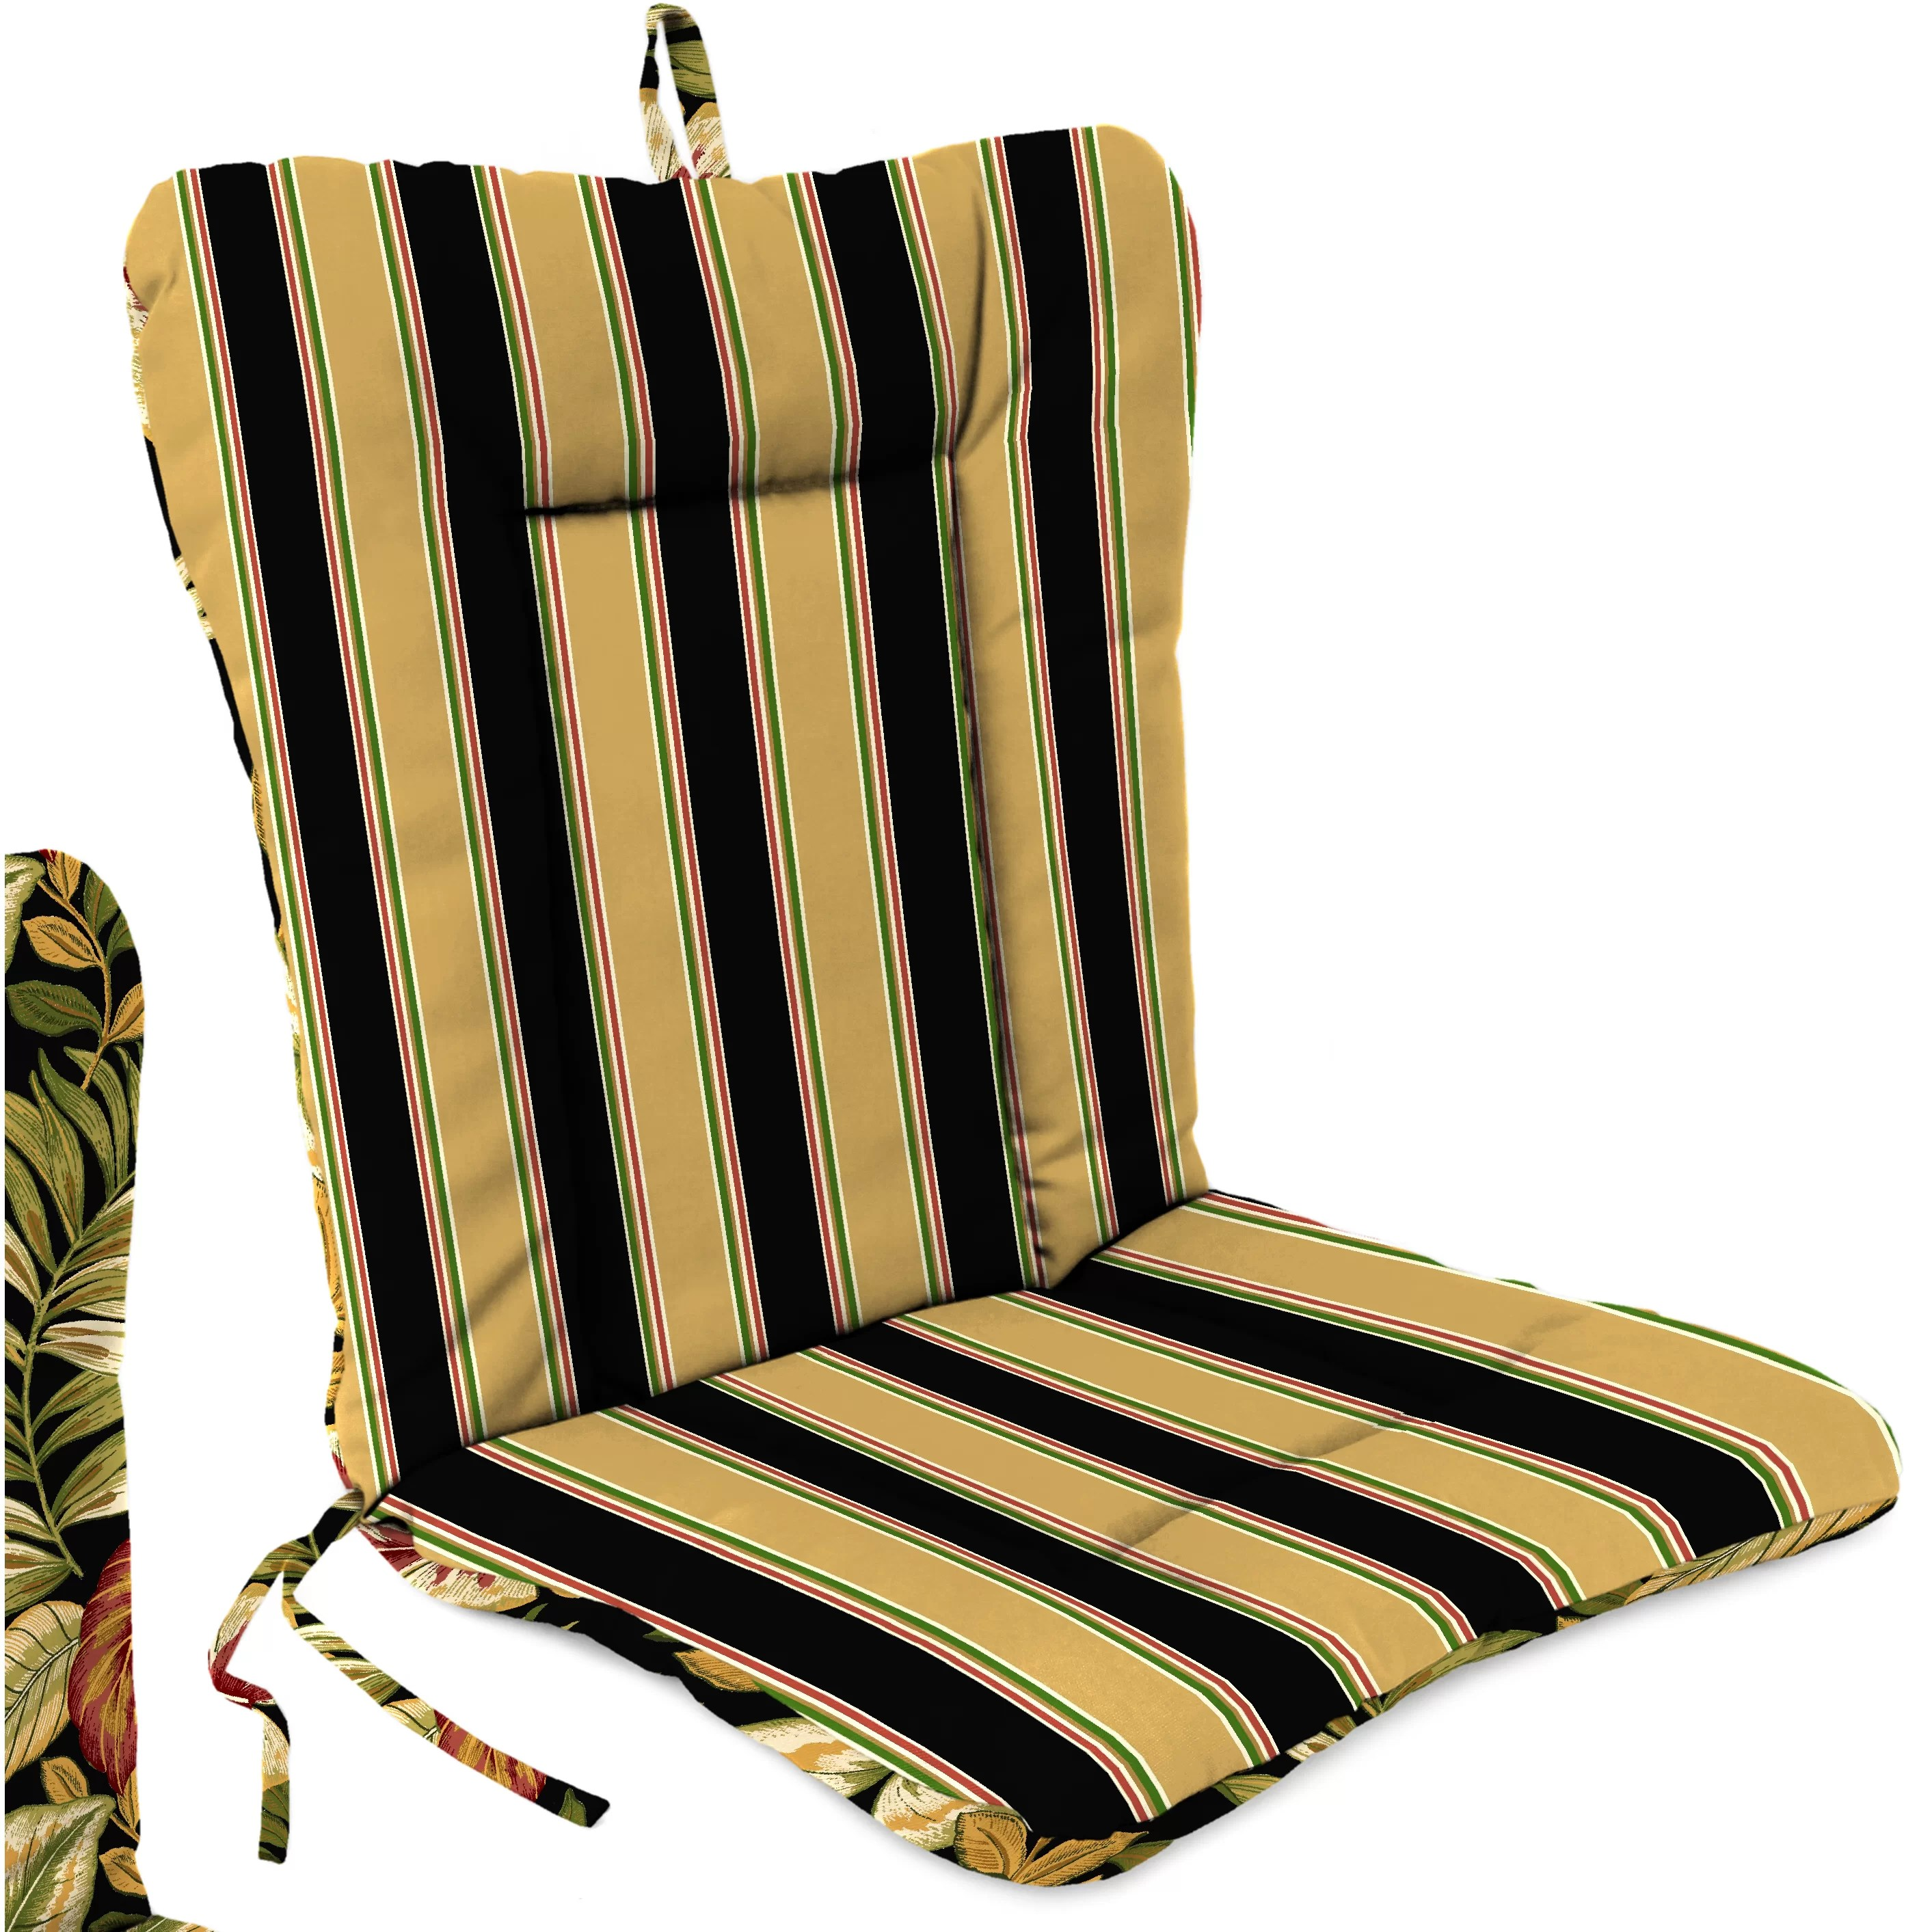 Sunbrella Adirondack Chair Cushions Jordan Manufacturing Outdoor Adirondack Chair Cushion